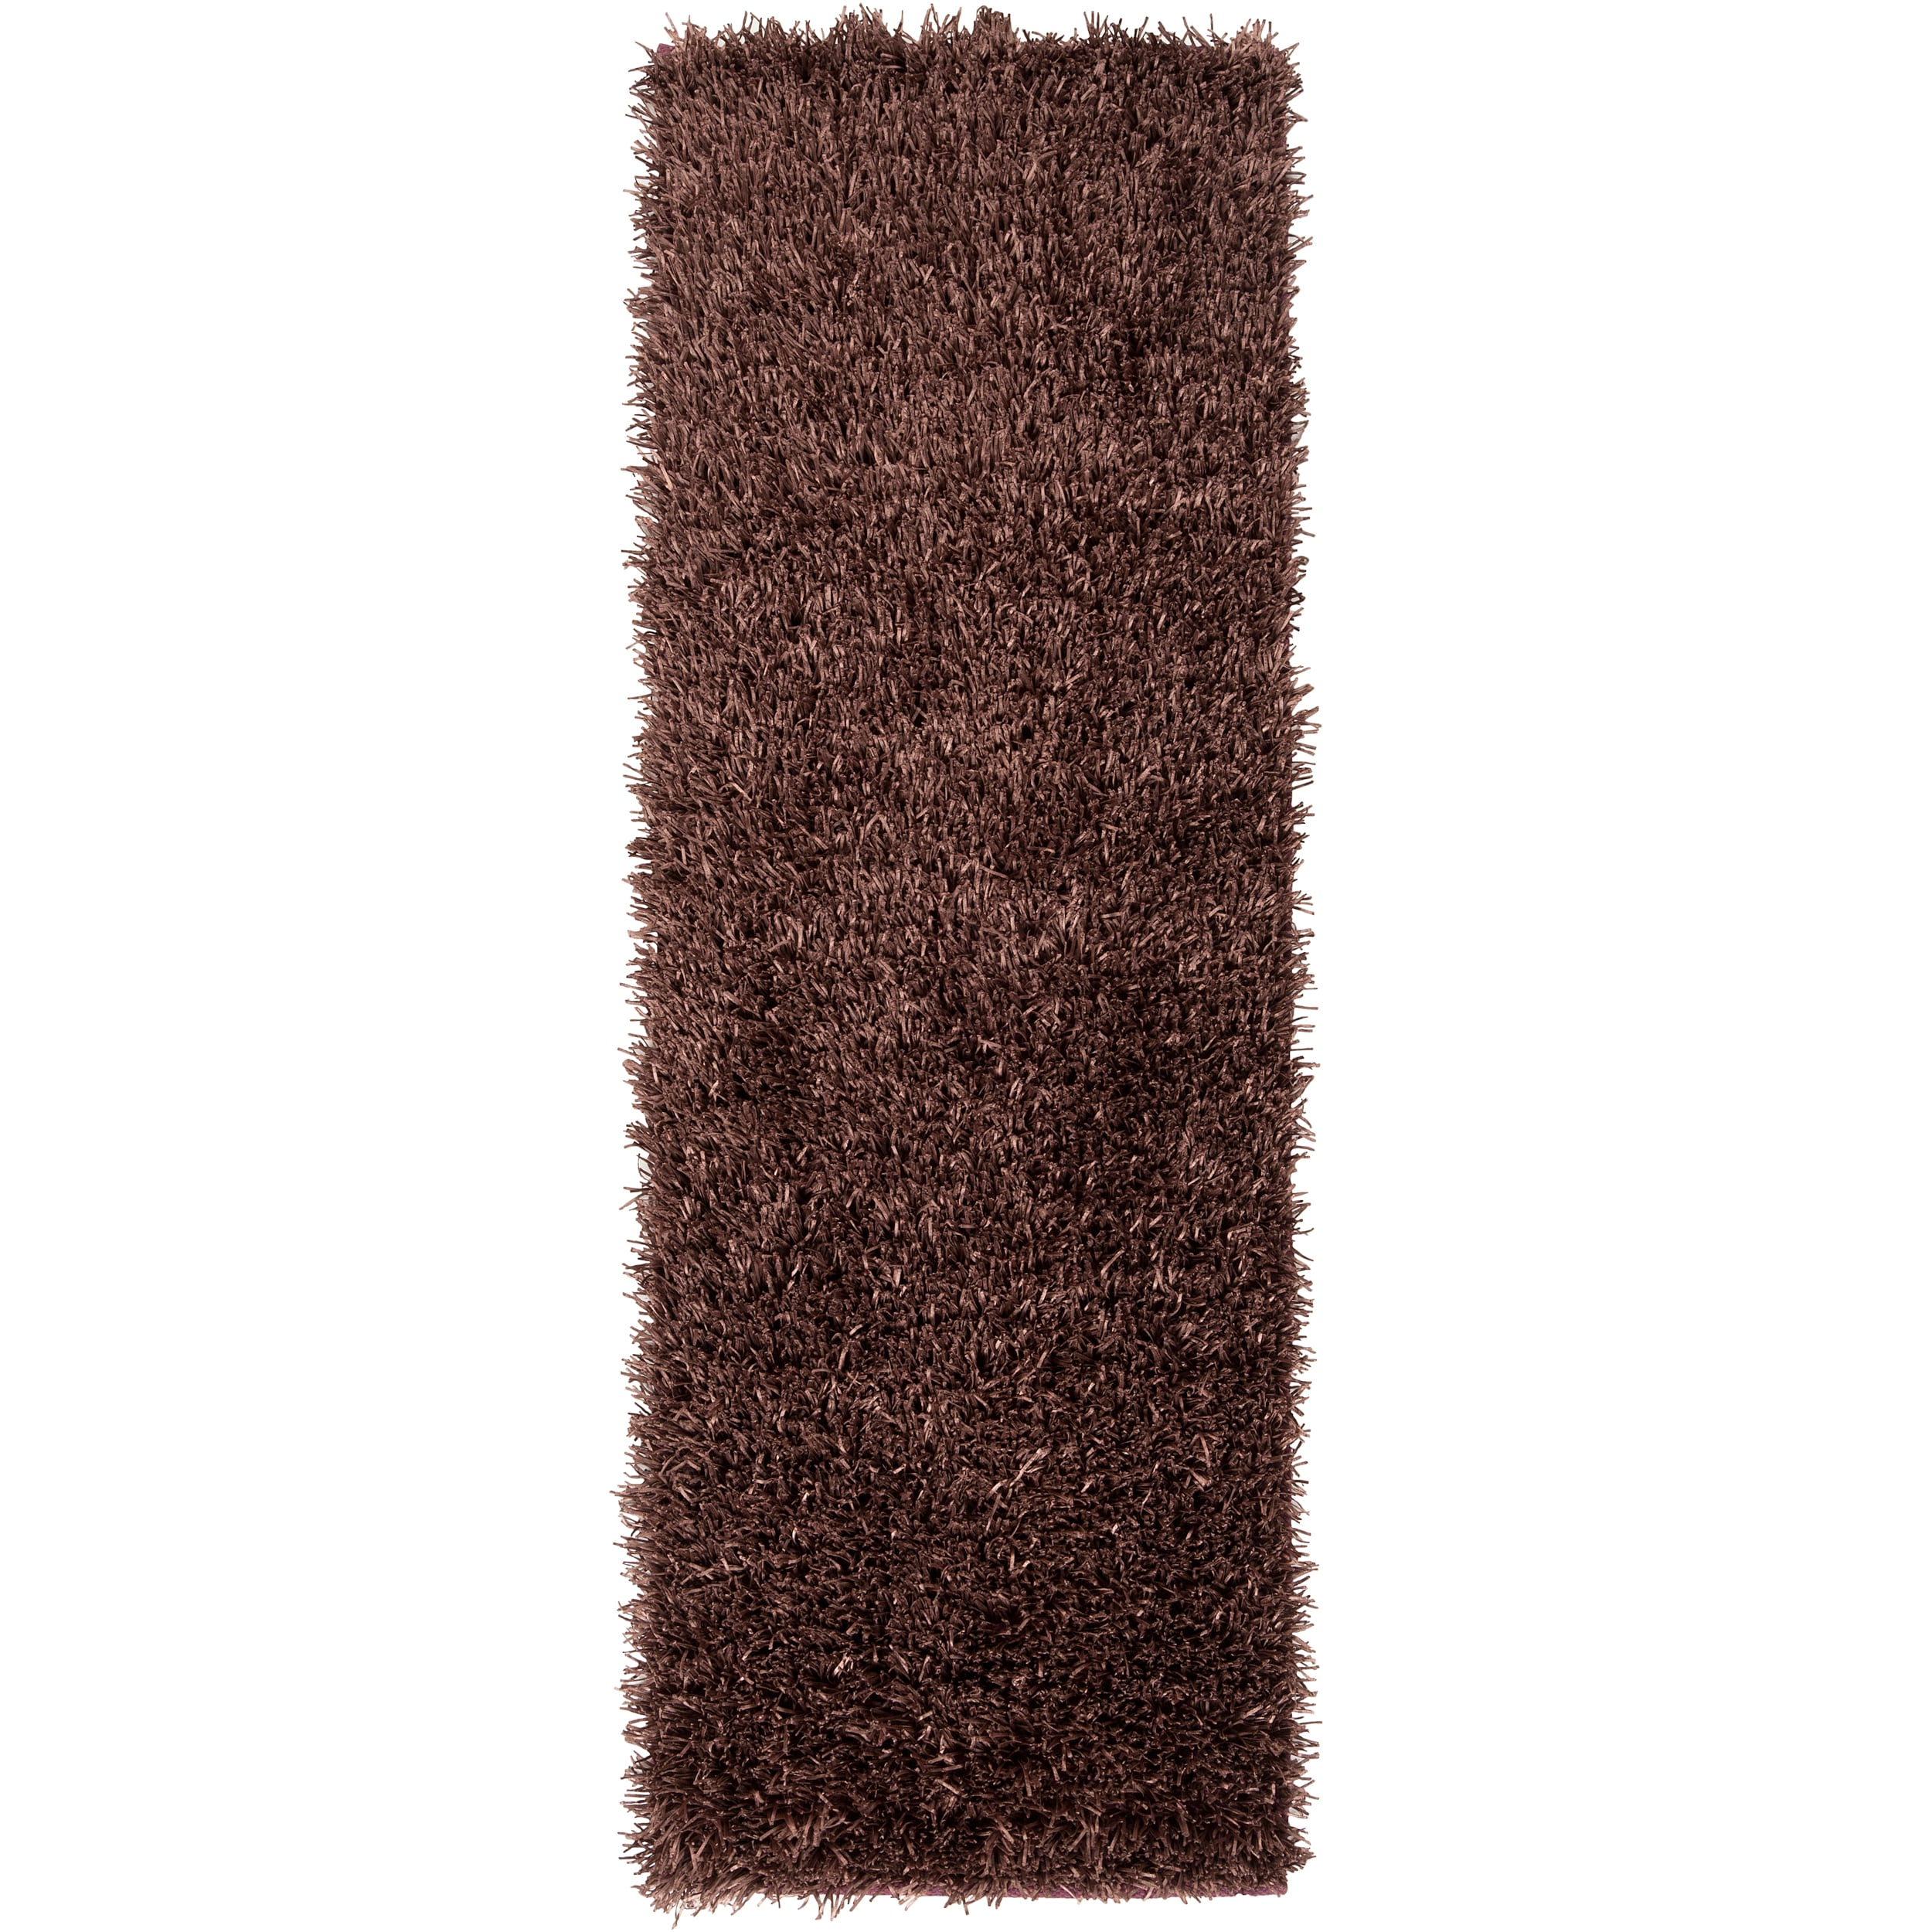 "Handwoven Brown South Hampton Soft Plush Shag Runner Rug (2'6"" x 8')"